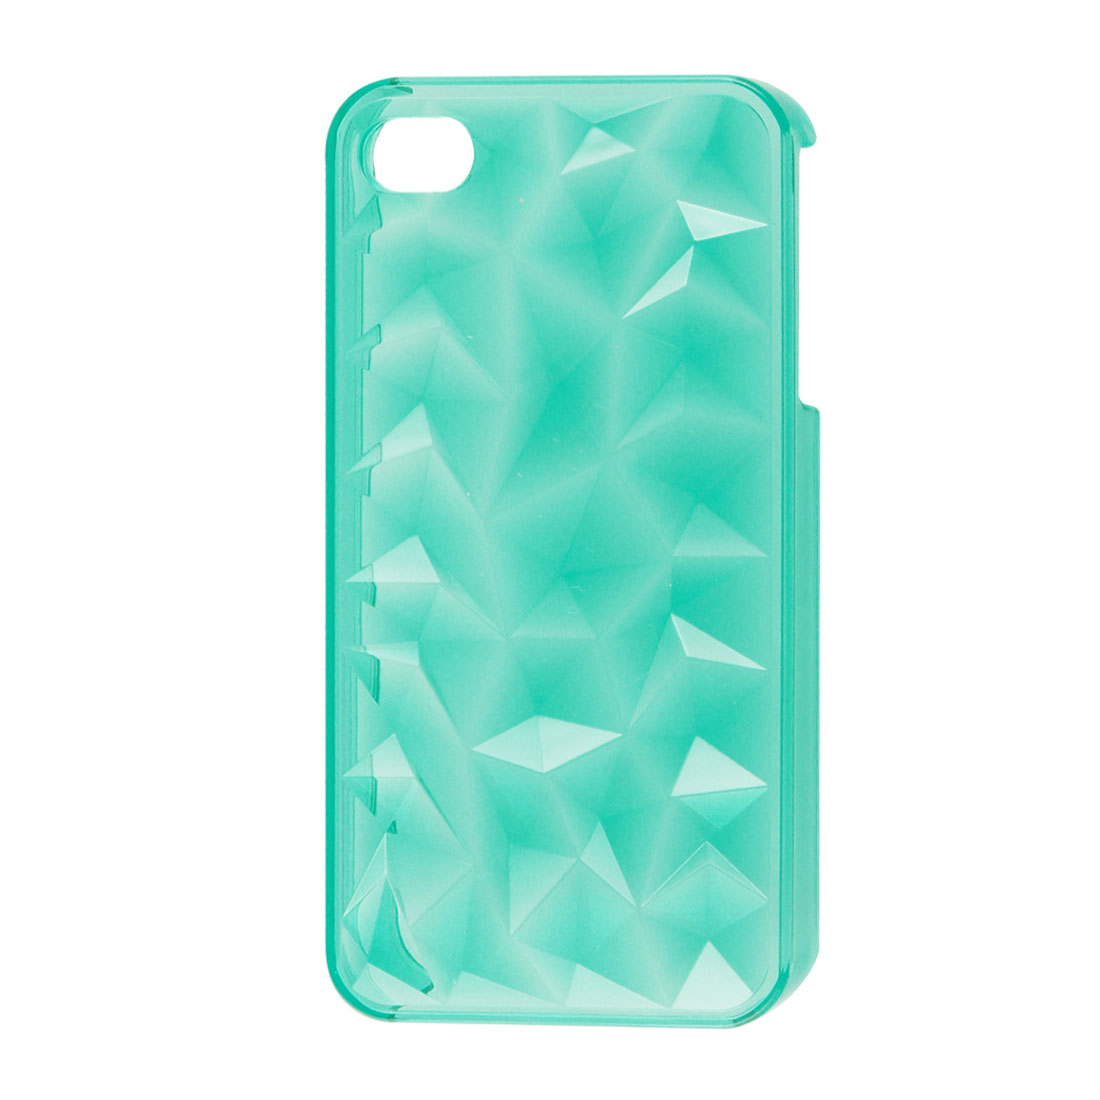 Clear Turquoise Color Background Plastic Back Shell Guard for iPhone 4 4G 4S